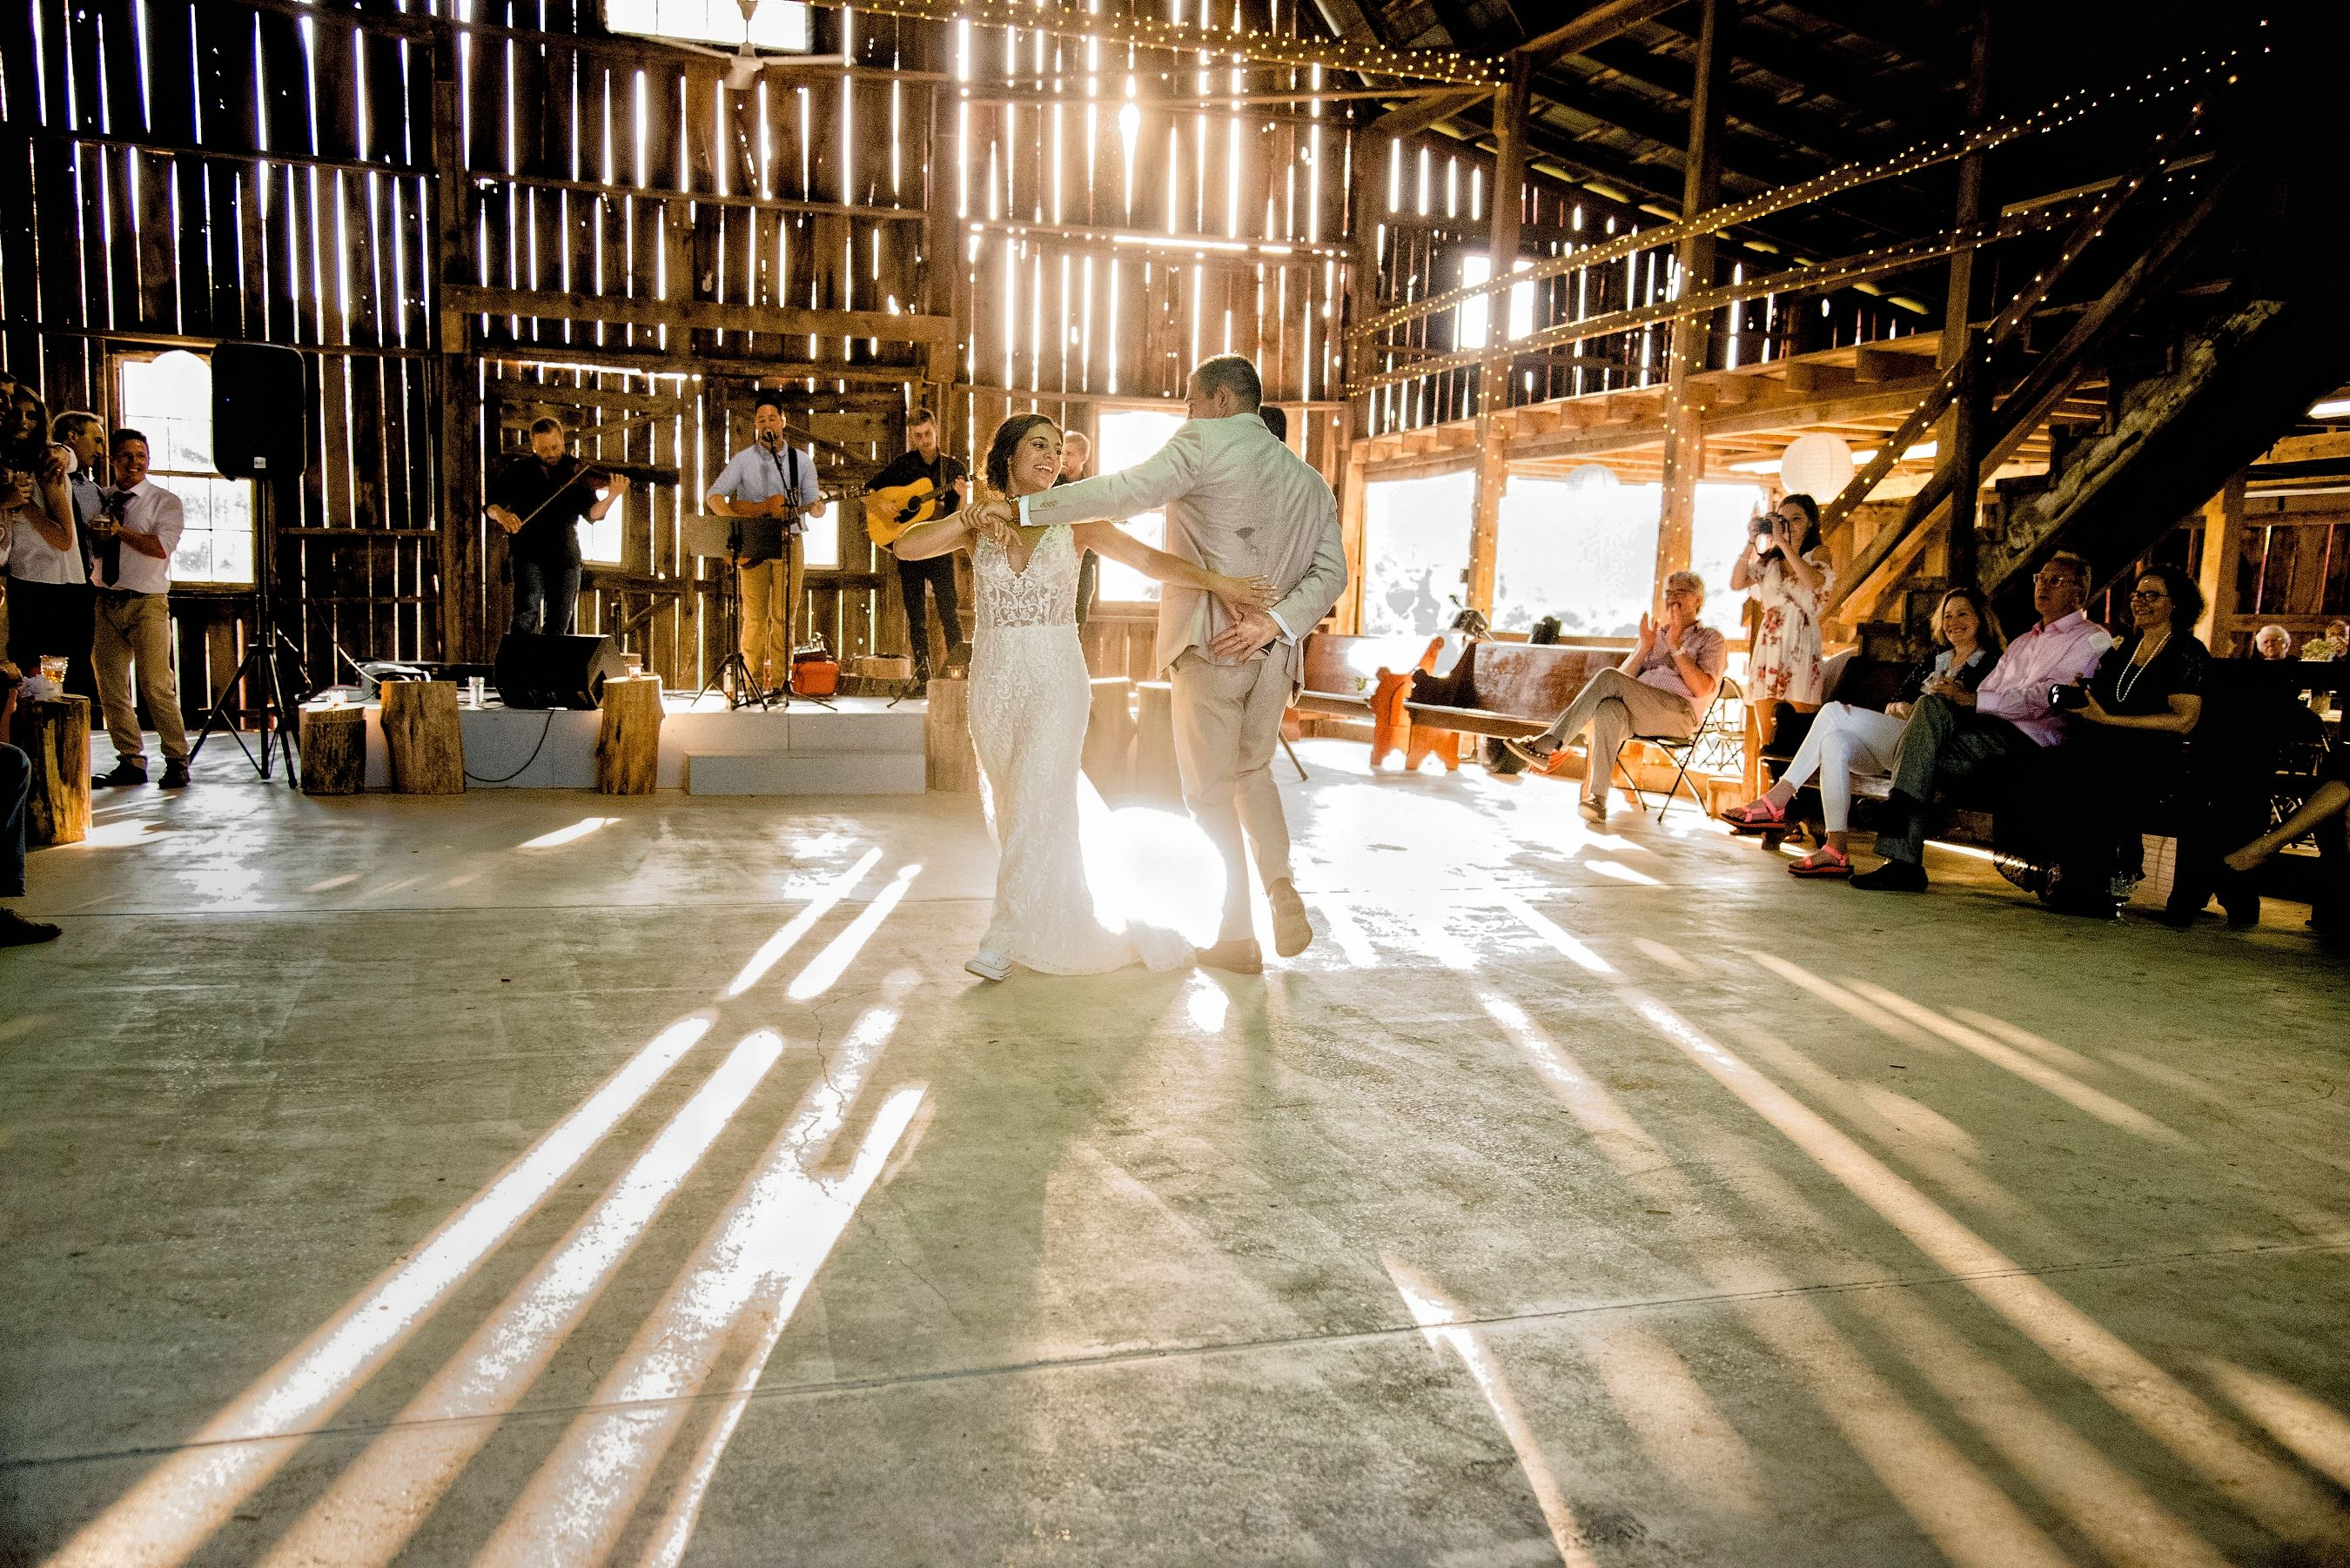 First Dance At The Barn Wedding